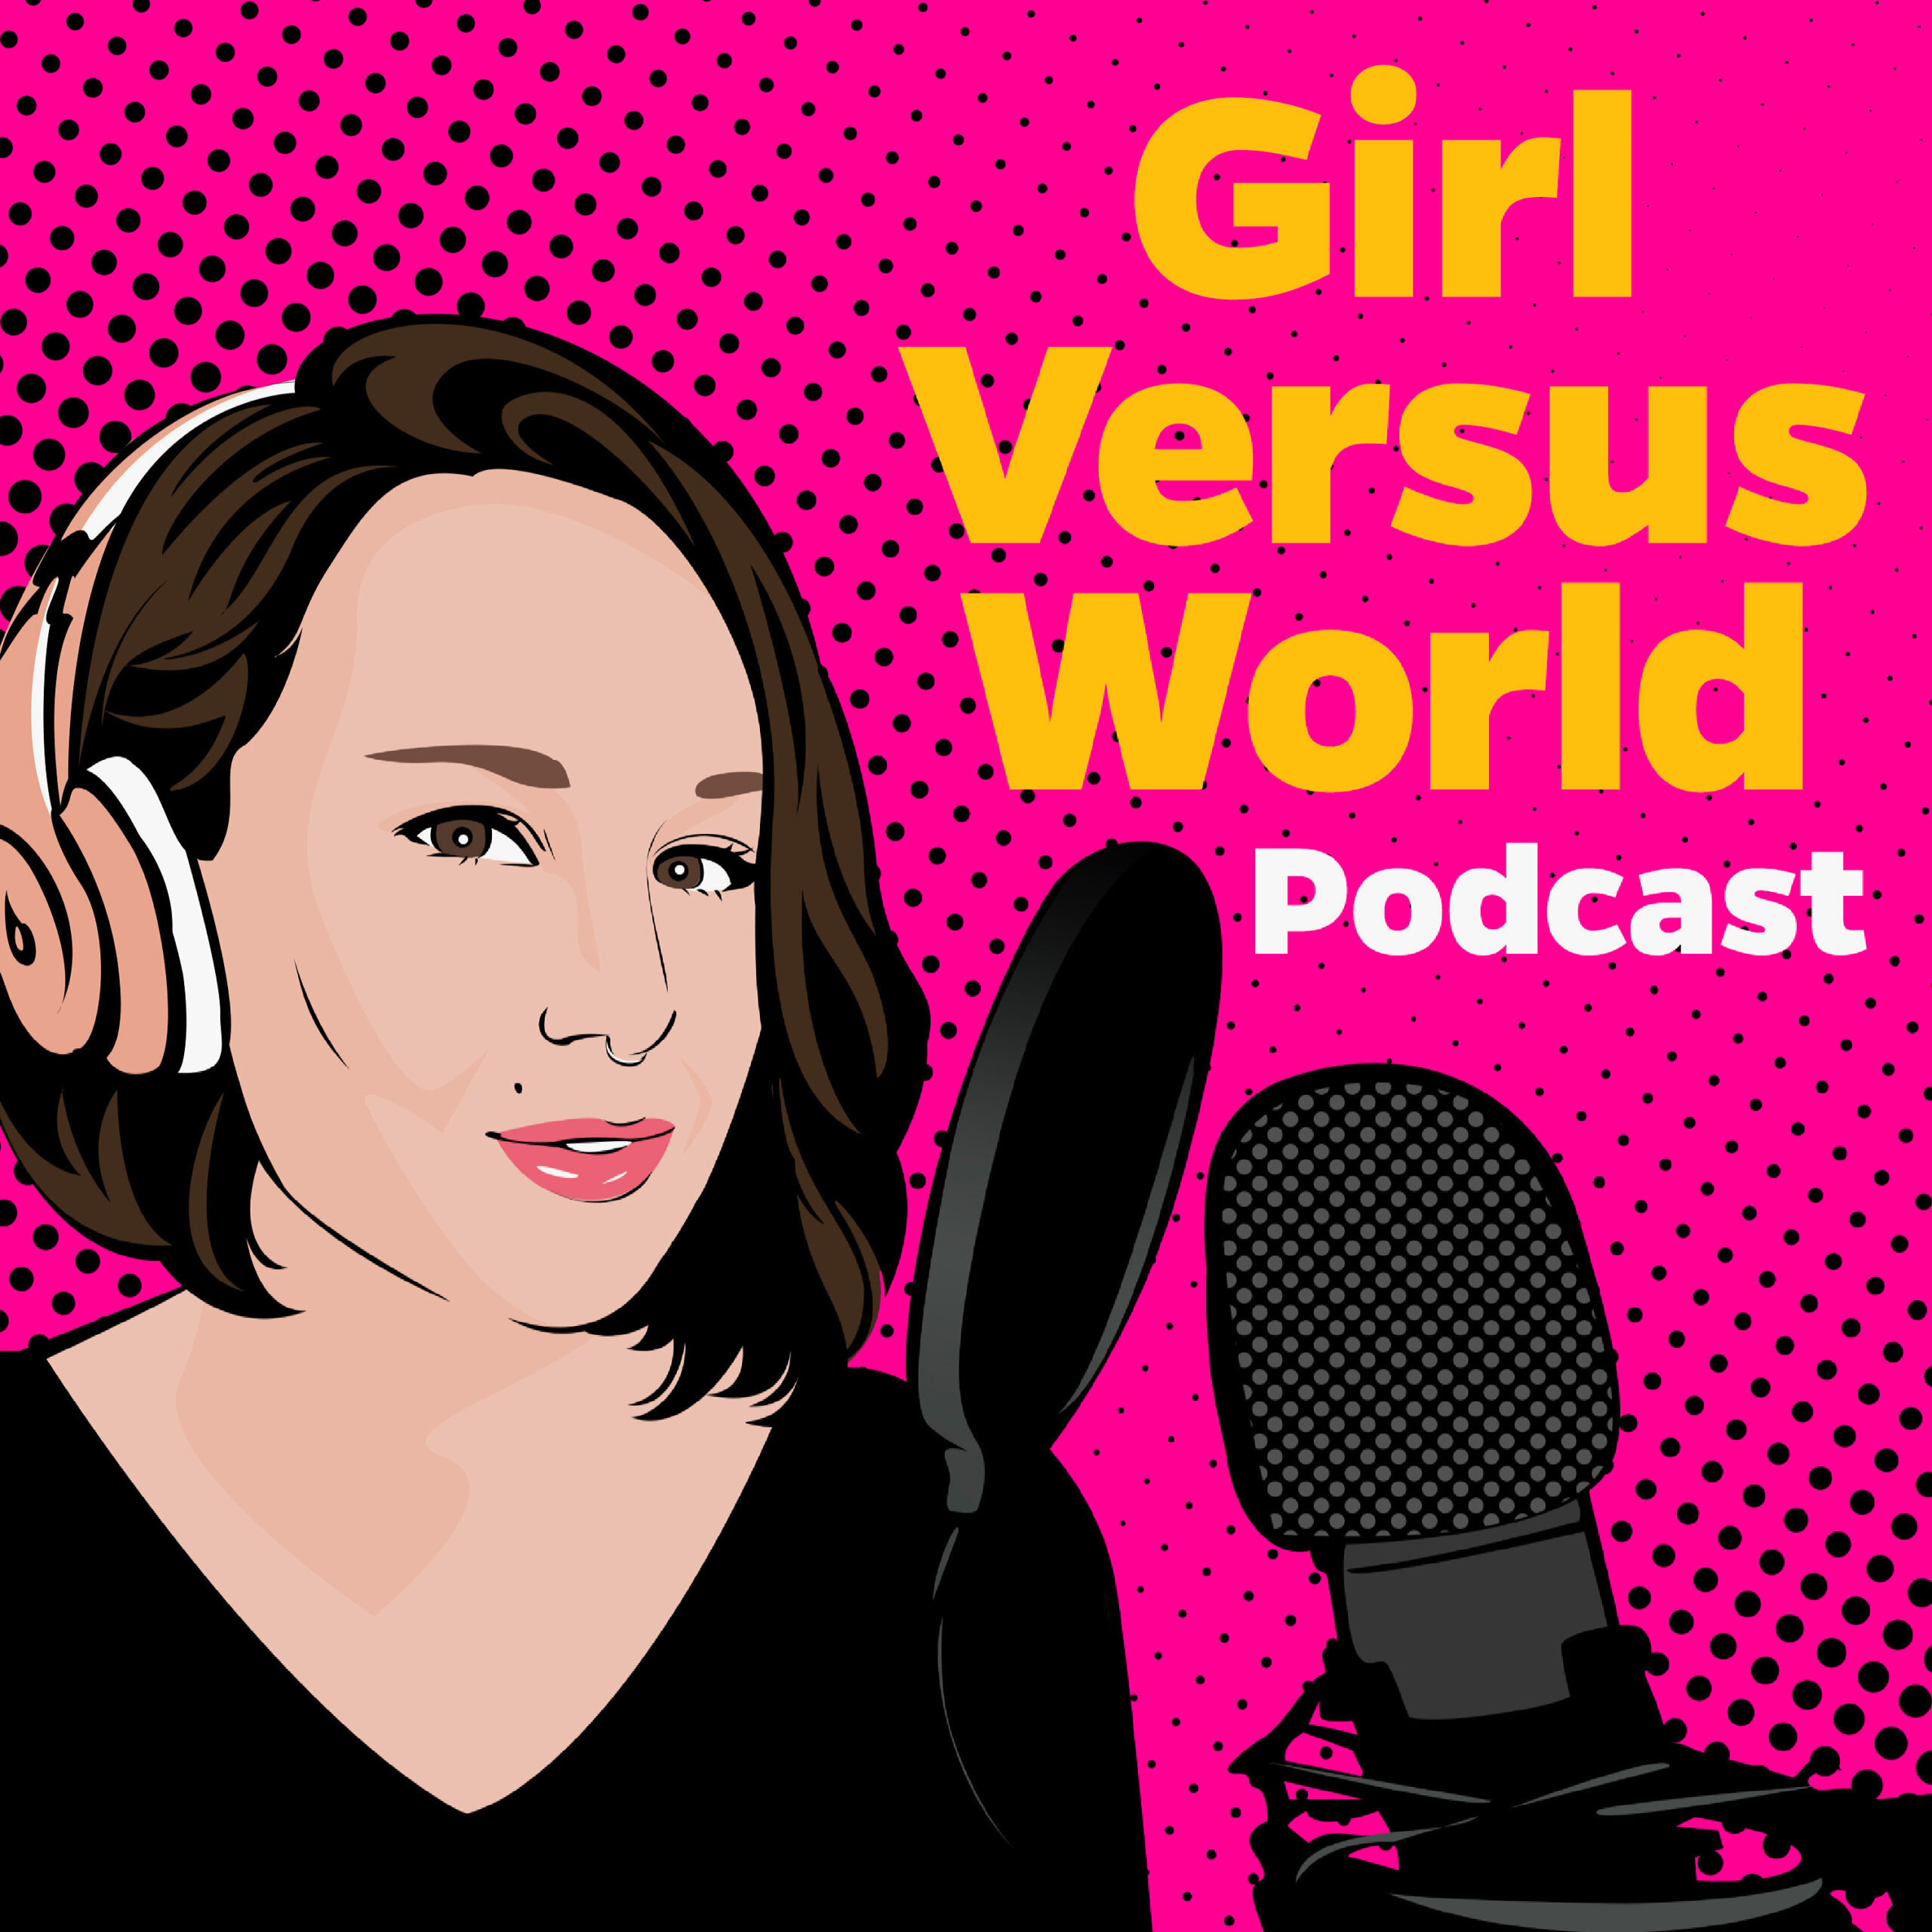 Announcing the Girl Versus World Podcast